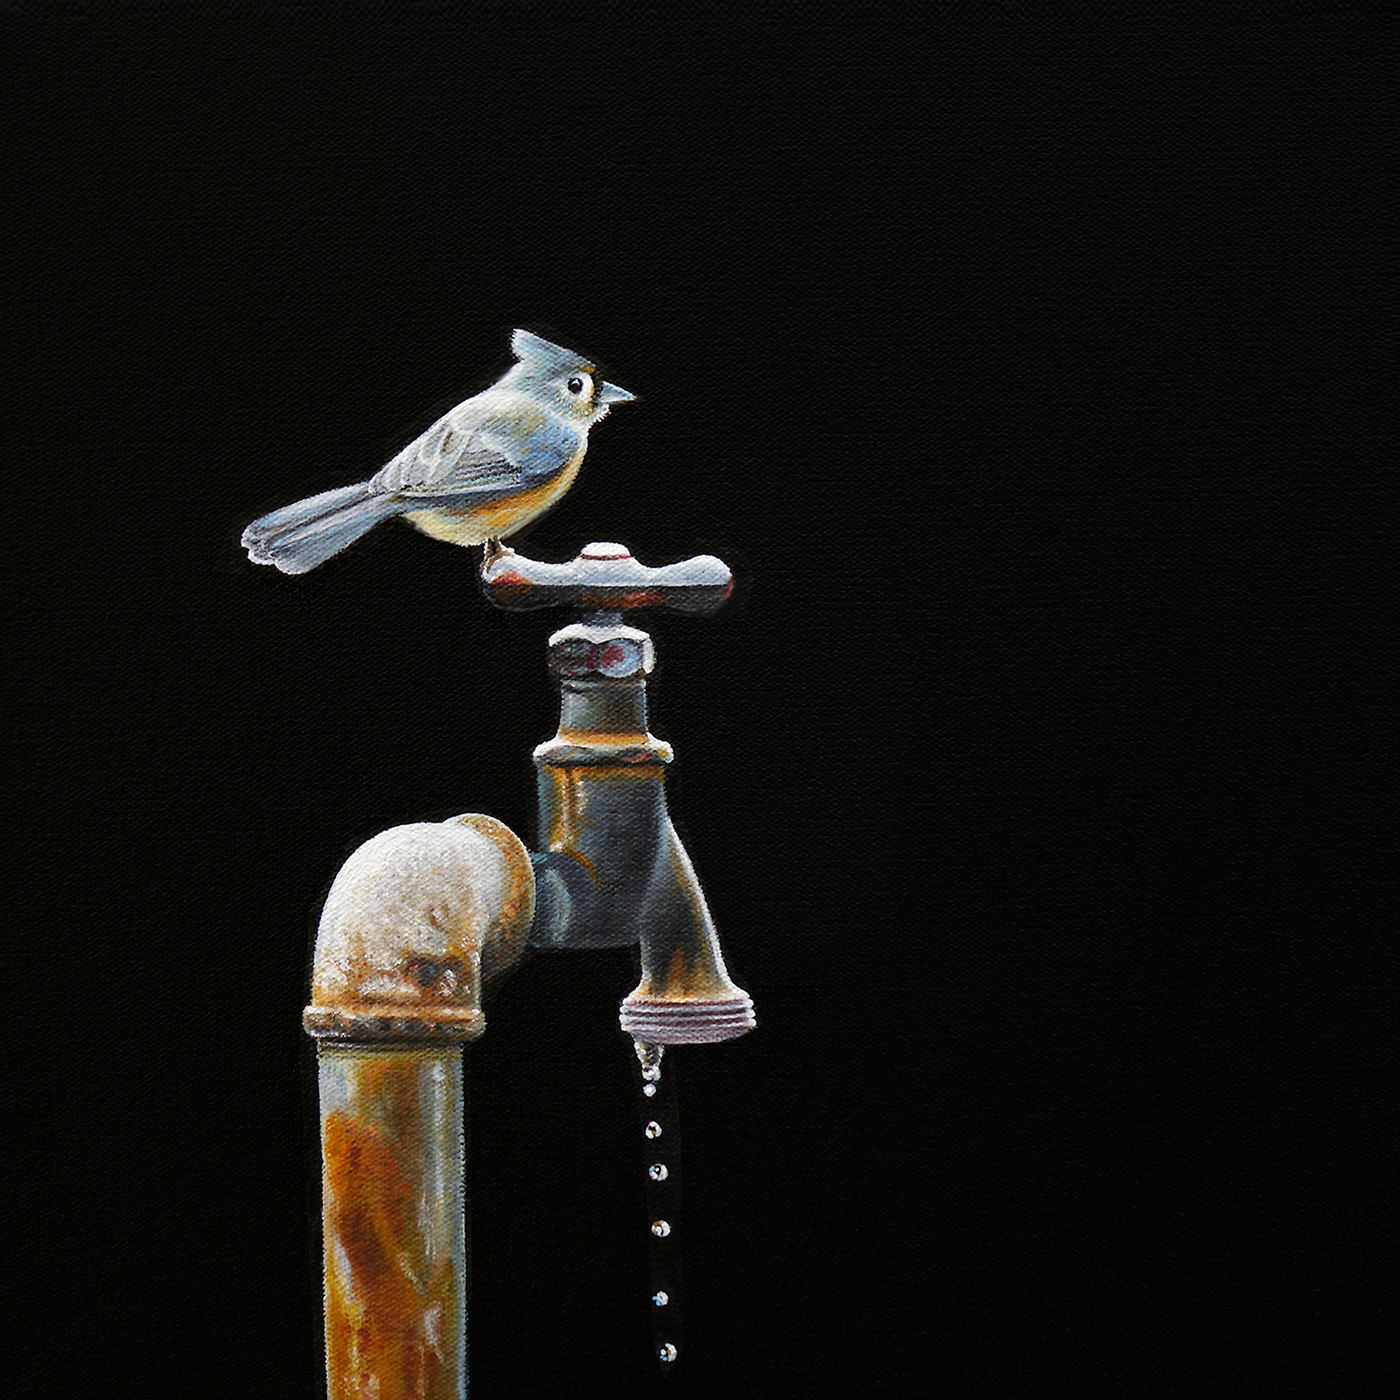 Spigot No. 1  |  12 x 12  |  Oil on canvas